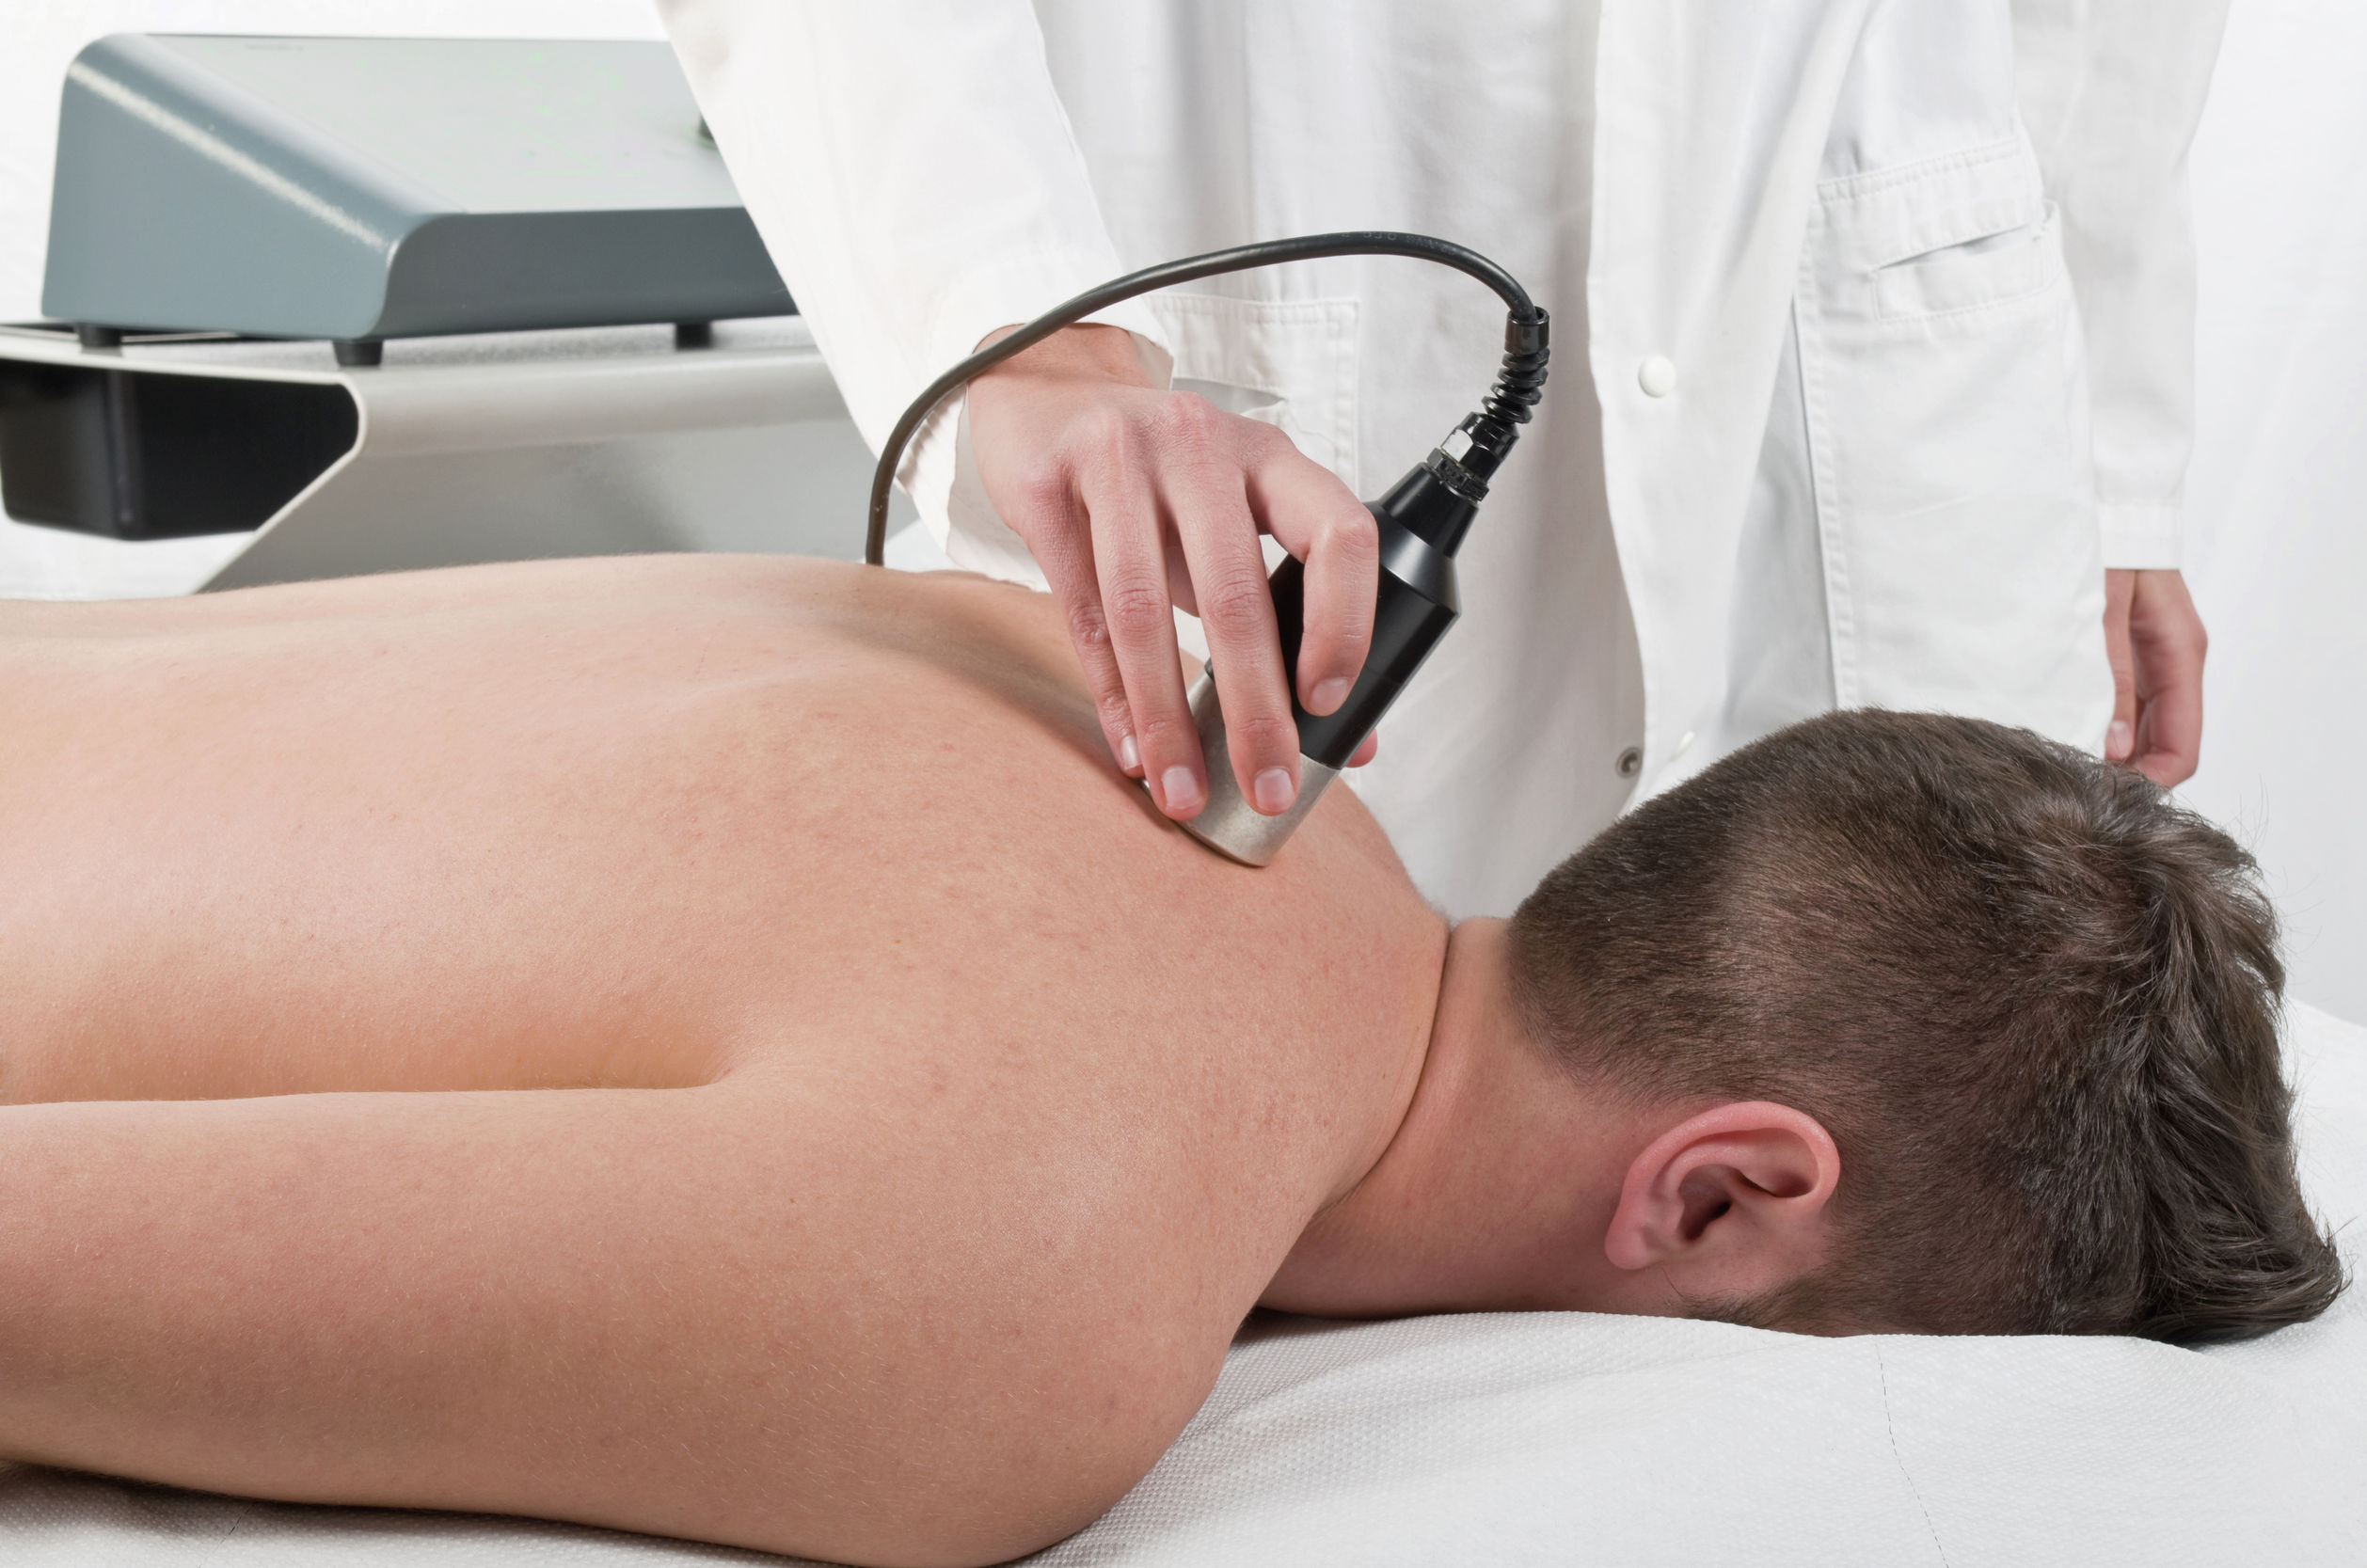 31833134 – close-up of laser treatment at physiotherapy